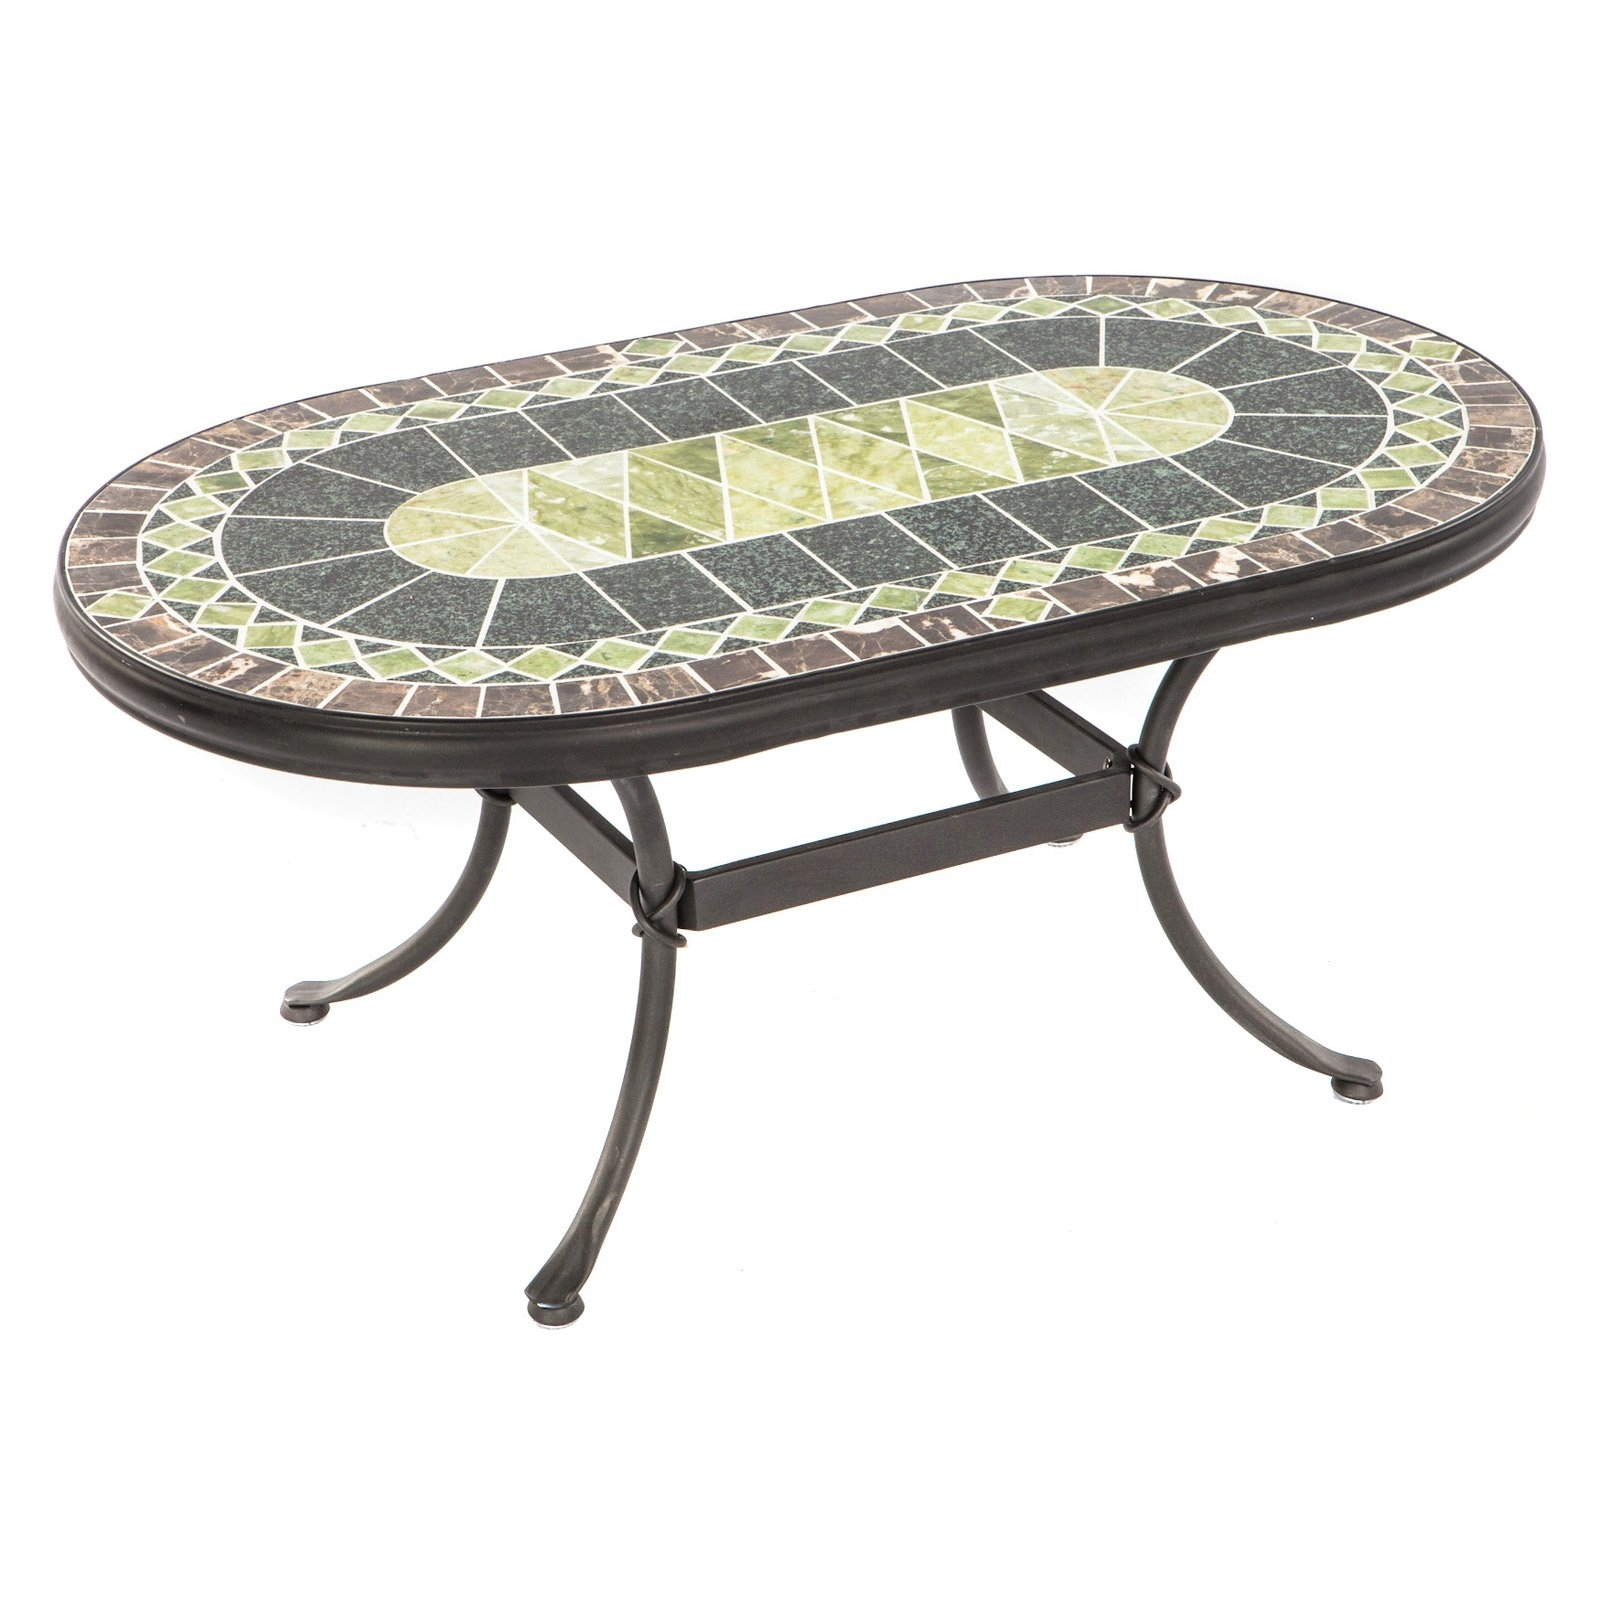 Beautiful Mosaic Accent Table With One Look At Pier 139S Elba Mosaic Pertaining To Famous Elba Ottoman Coffee Tables (View 1 of 20)